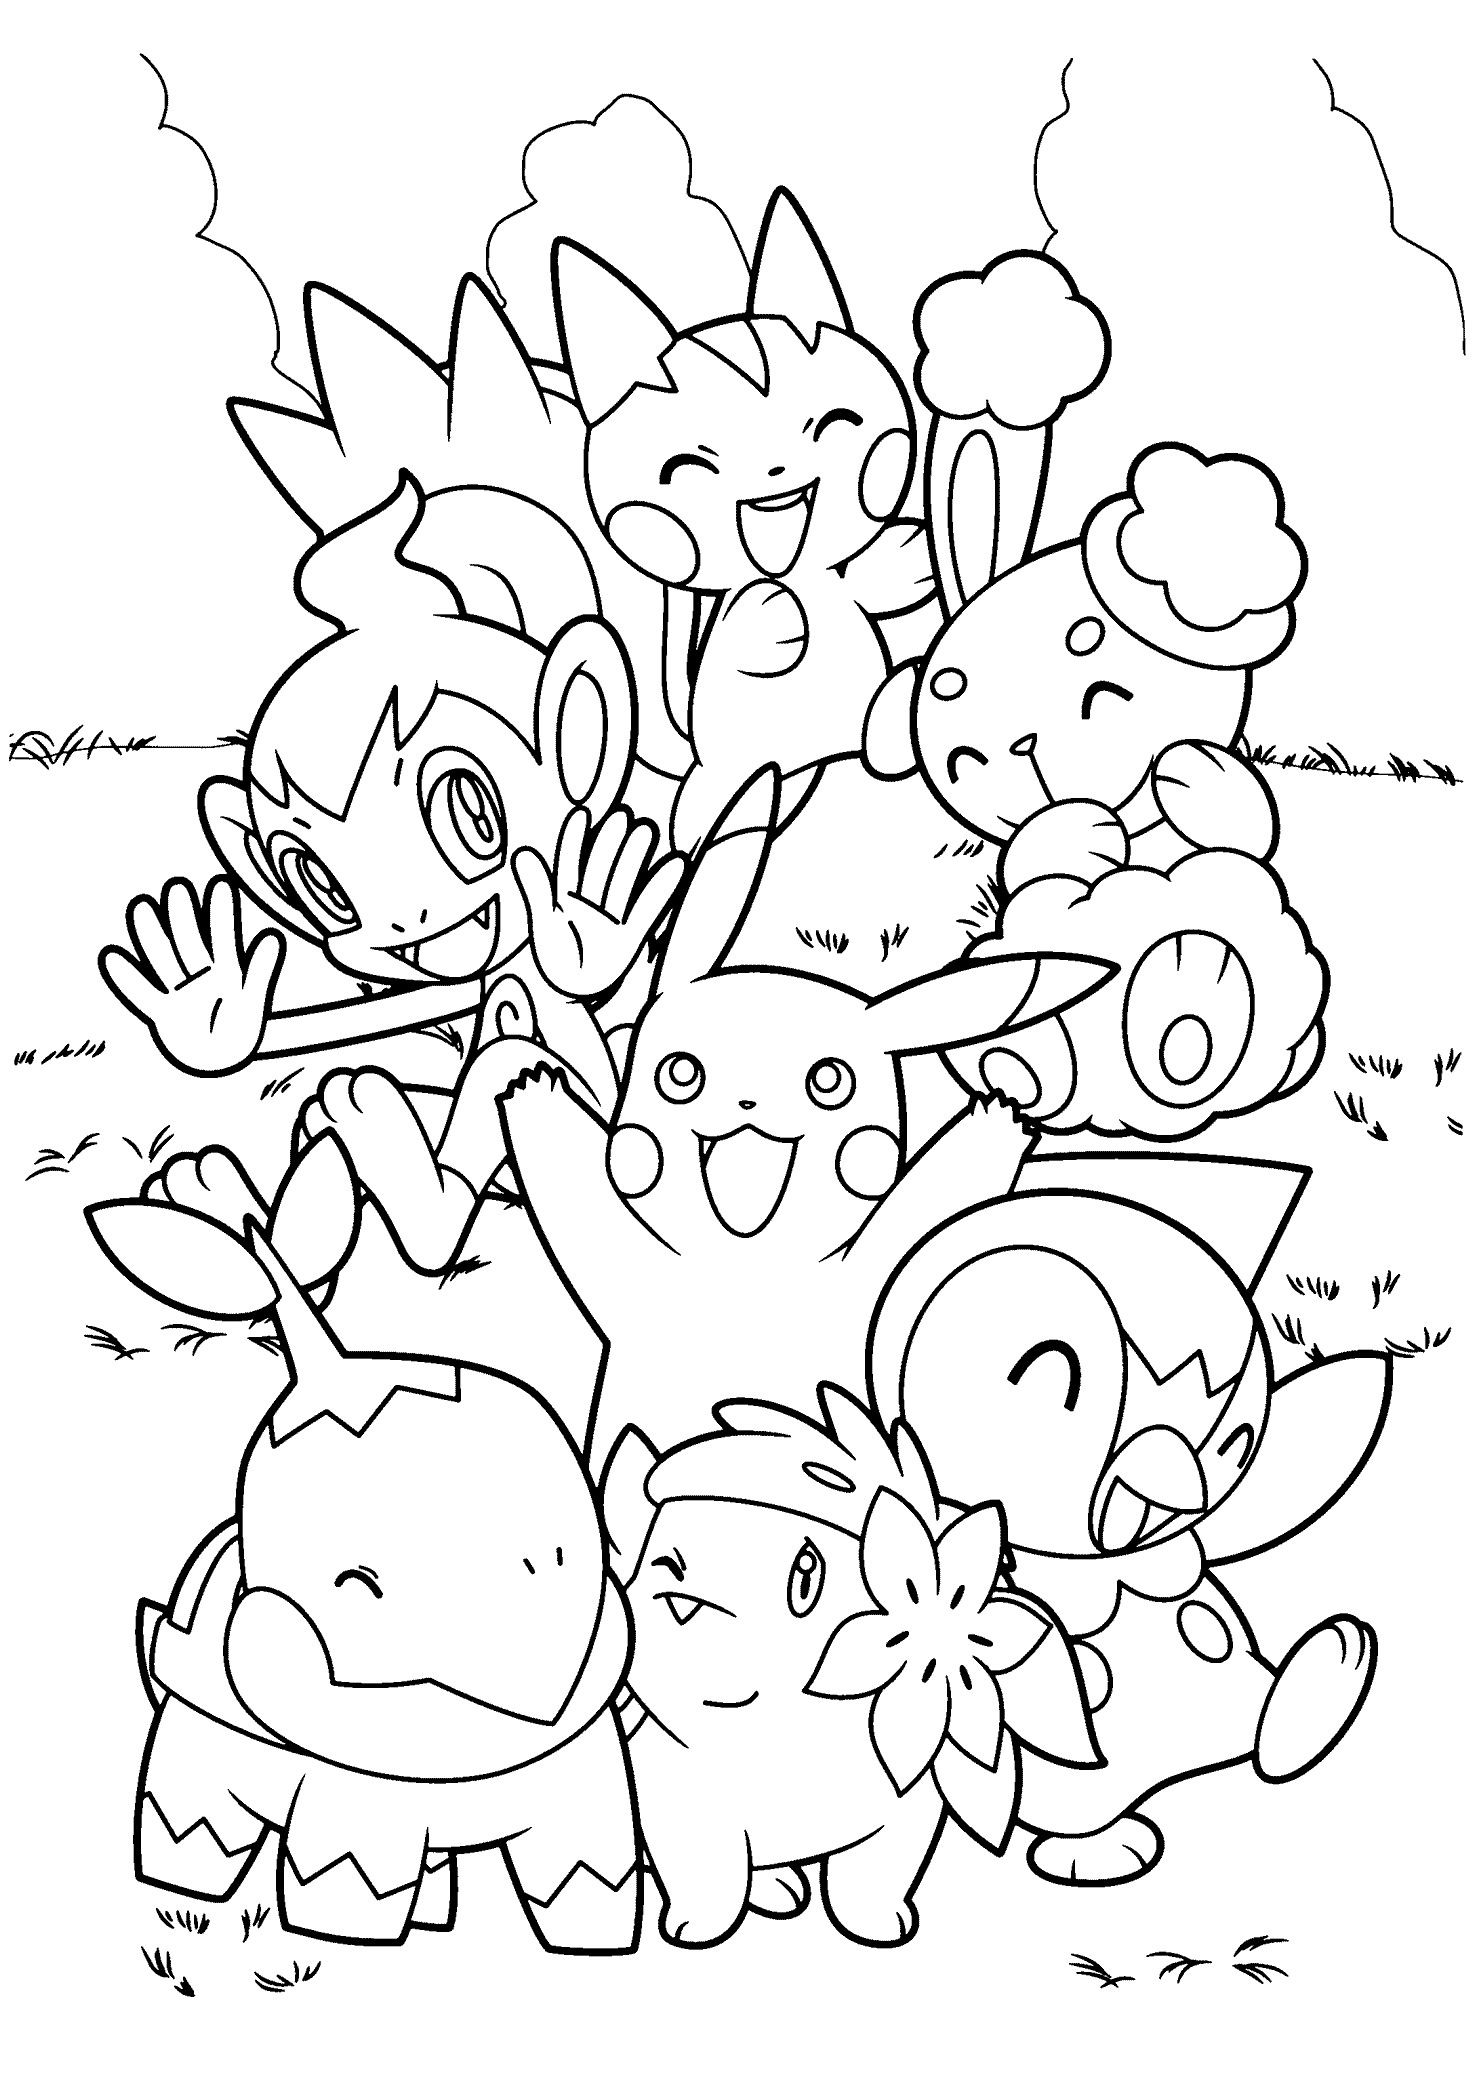 Pokemon Coloring Pages Color By Number From The Thousands Of Photographs On The Web Concernin Pokemon Coloring Sheets Pokemon Coloring Pages Pokemon Coloring